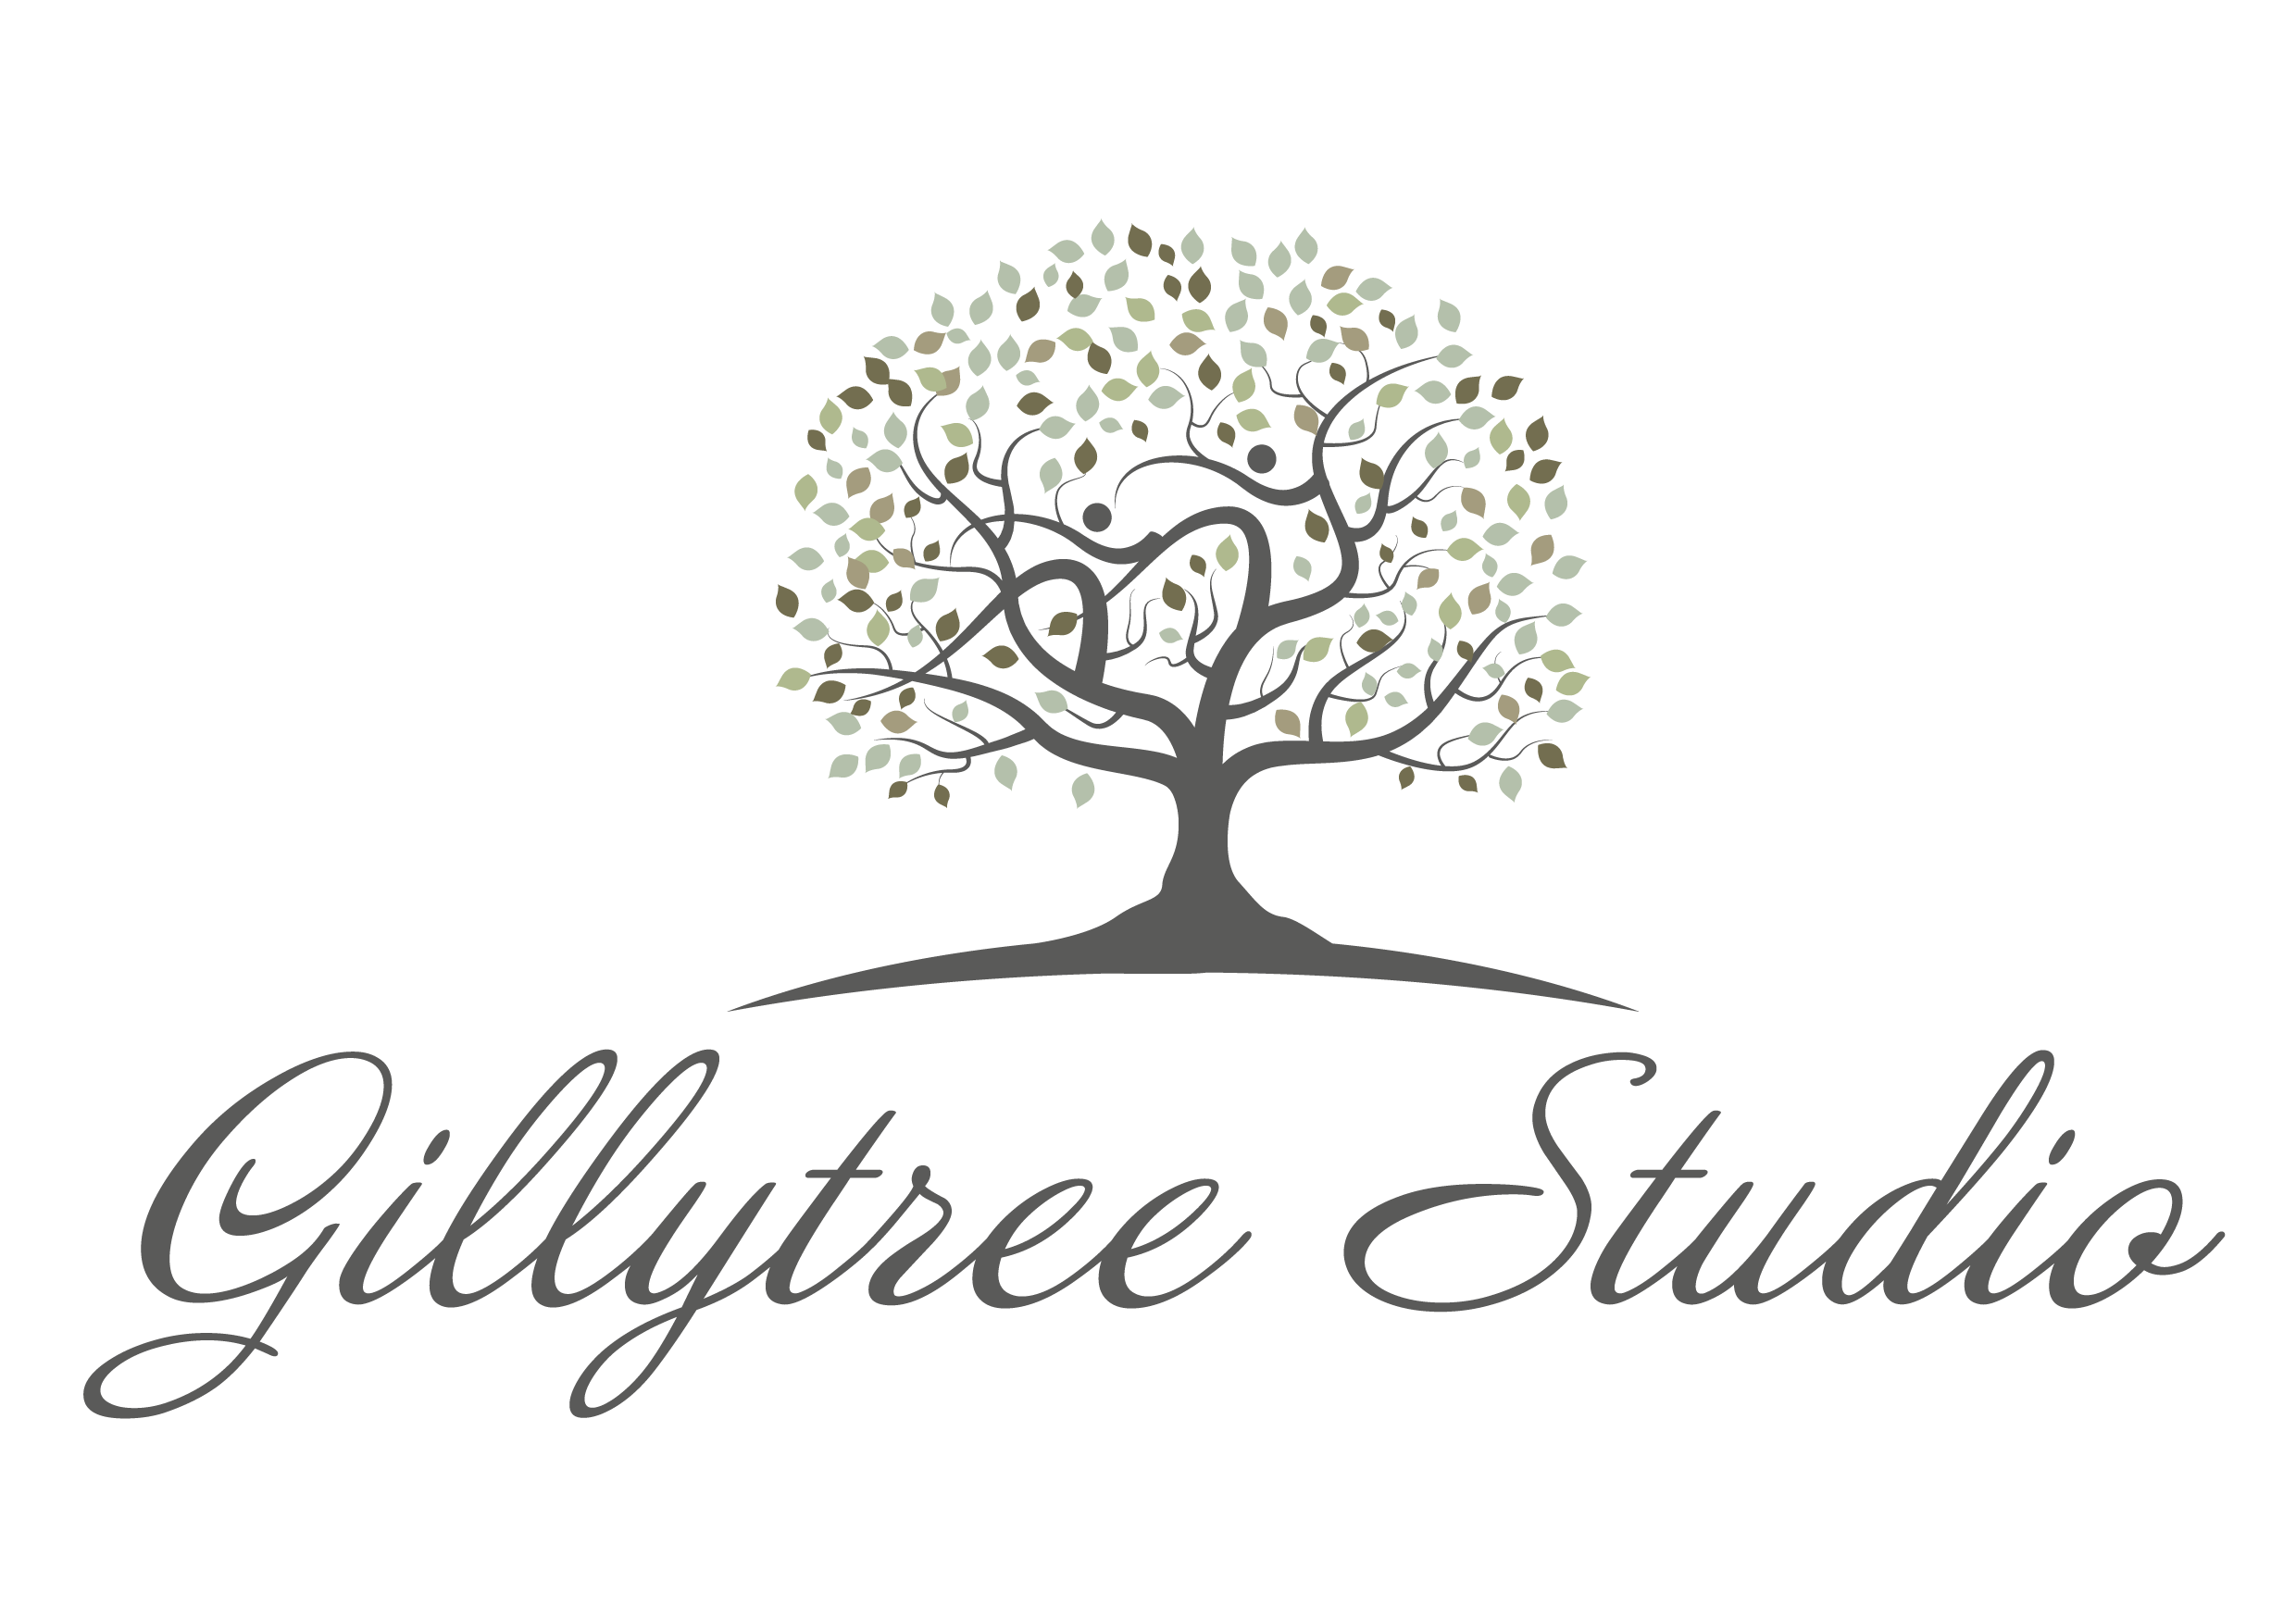 www.gillytreestudio.co.uk